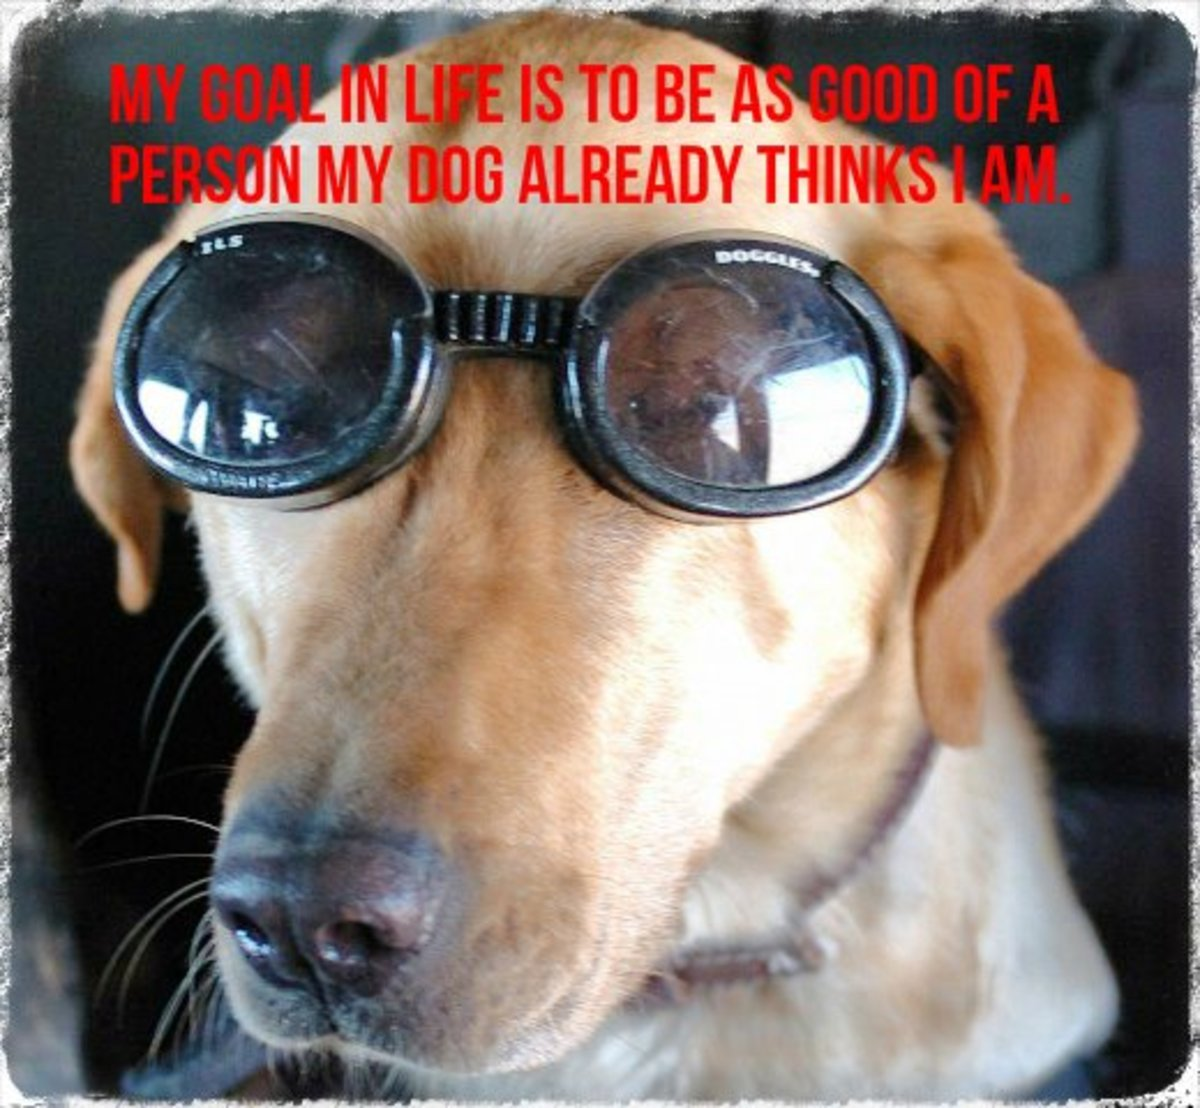 """My goal is to be as good of a person as my dog already thinks I am."" - Author Unknown"